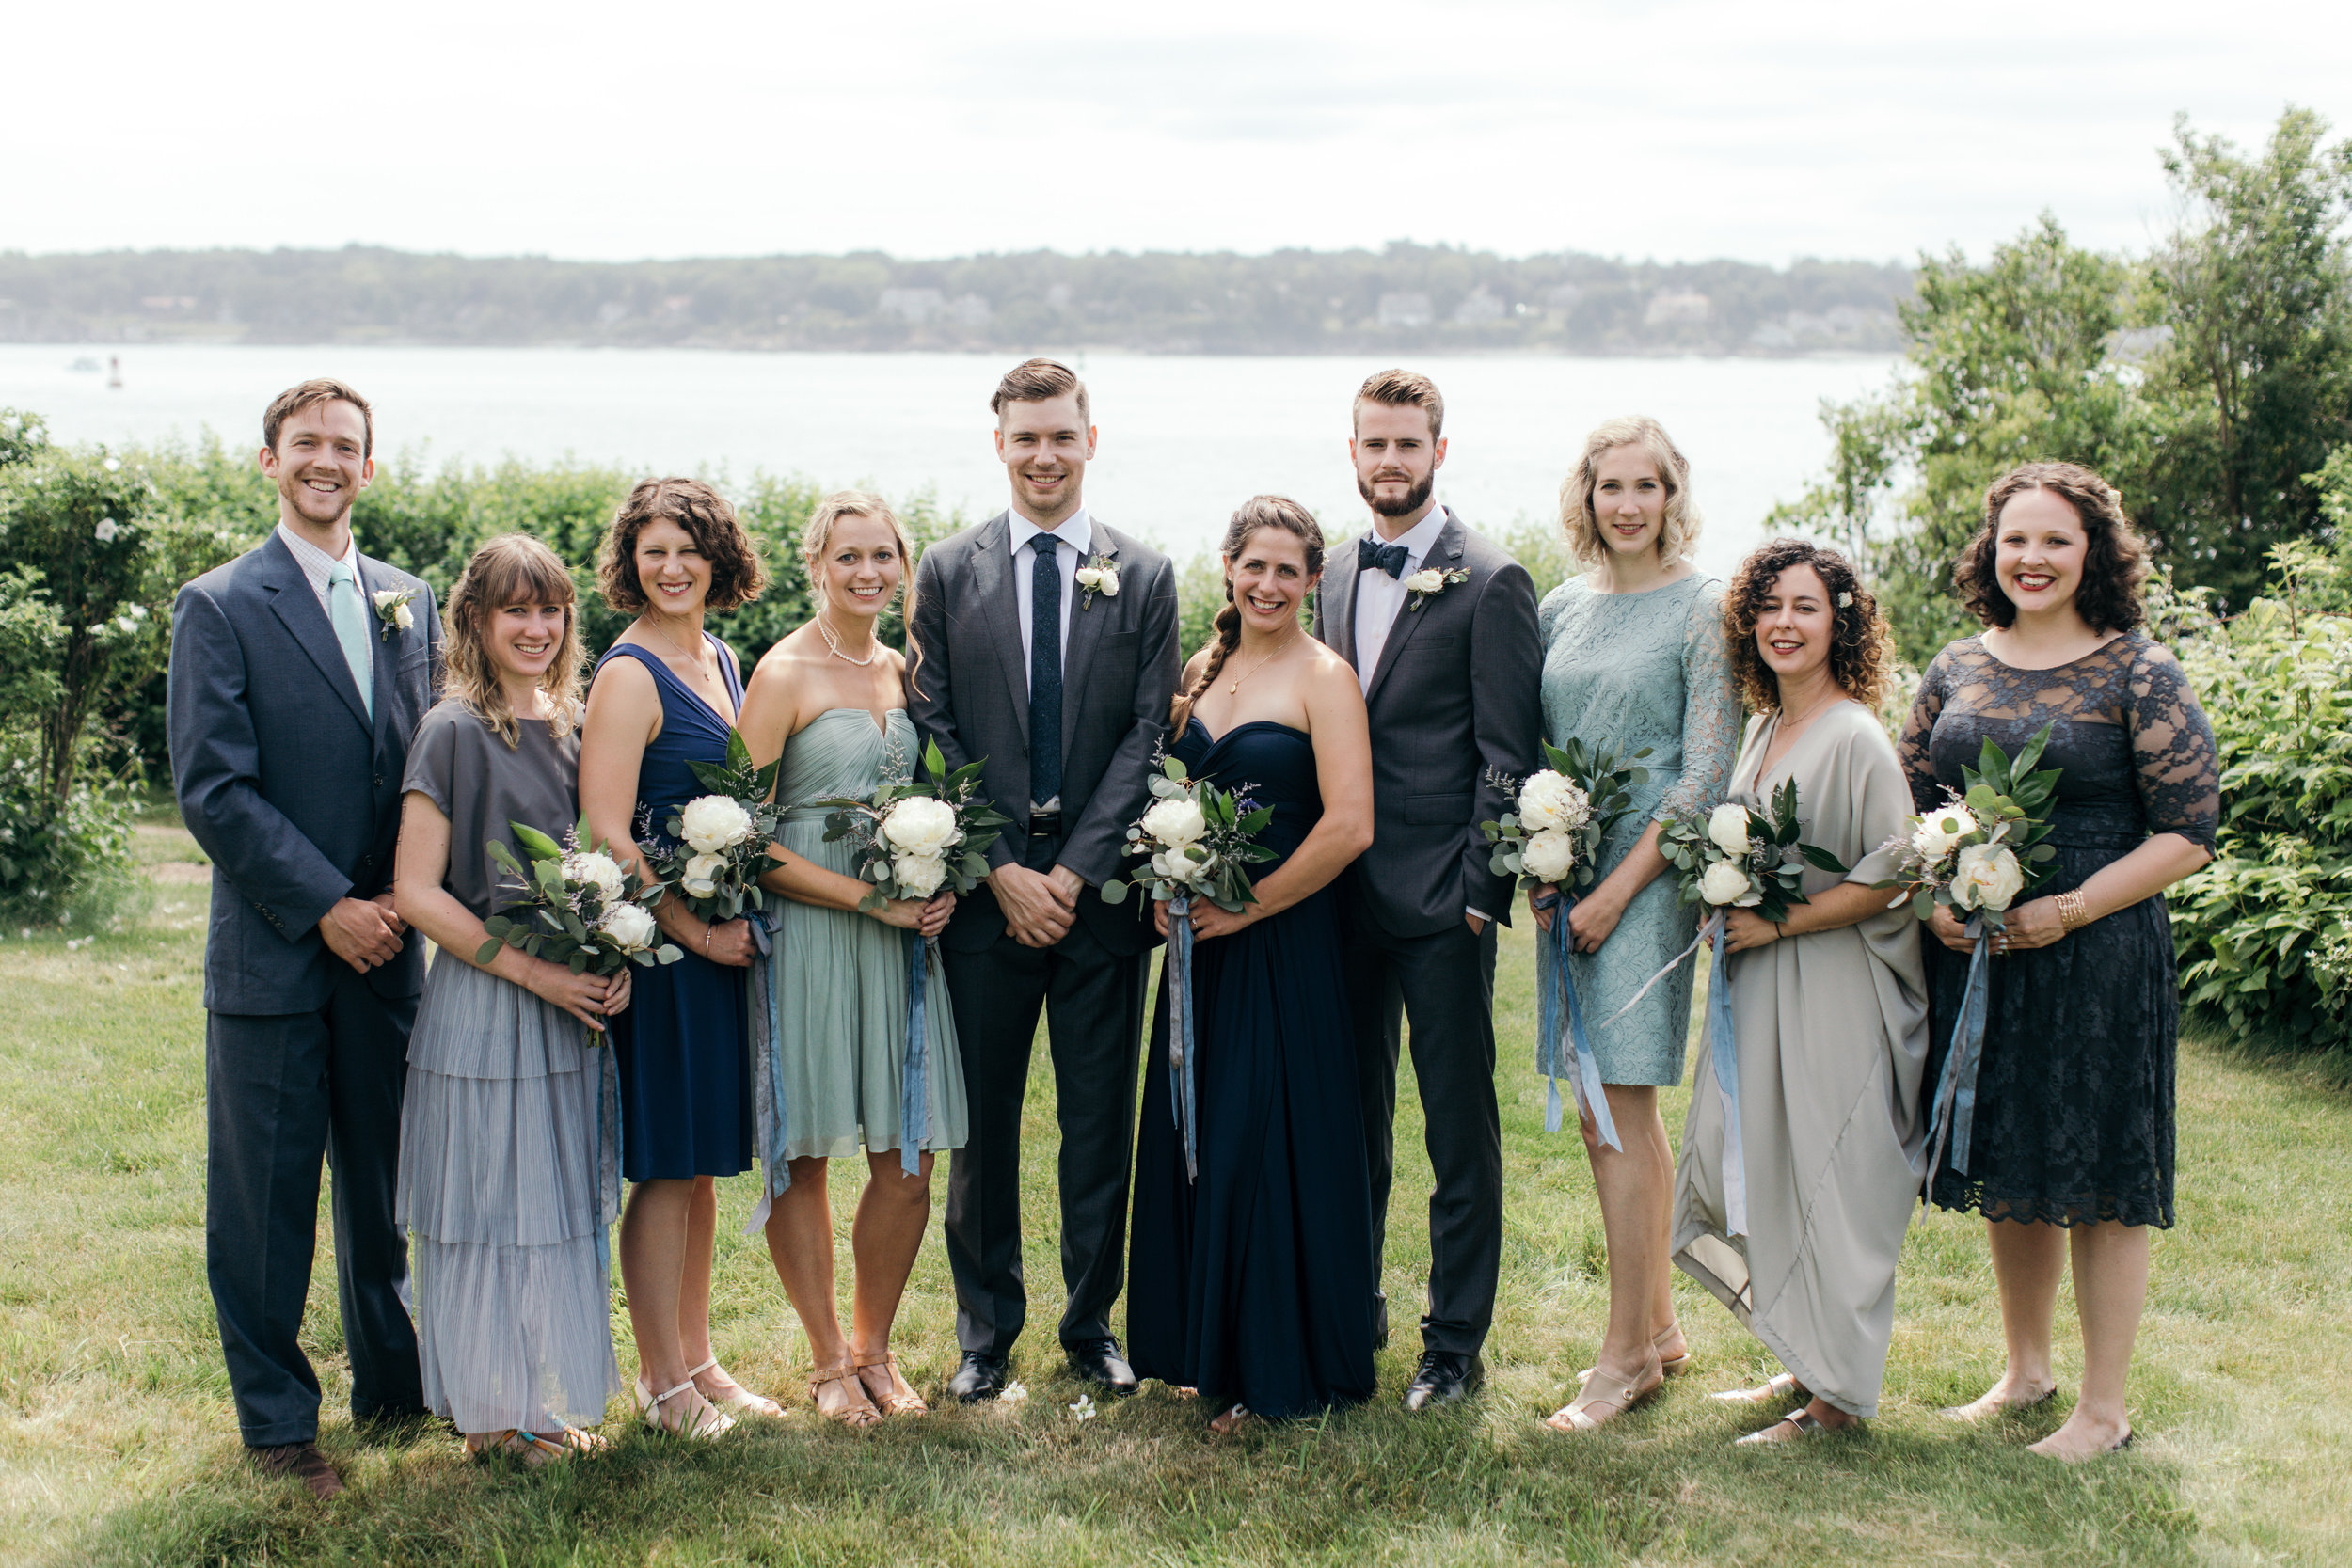 Watershed-Floral-Maine-Island-Wedding-Bridemaid-Bouquet.jpg